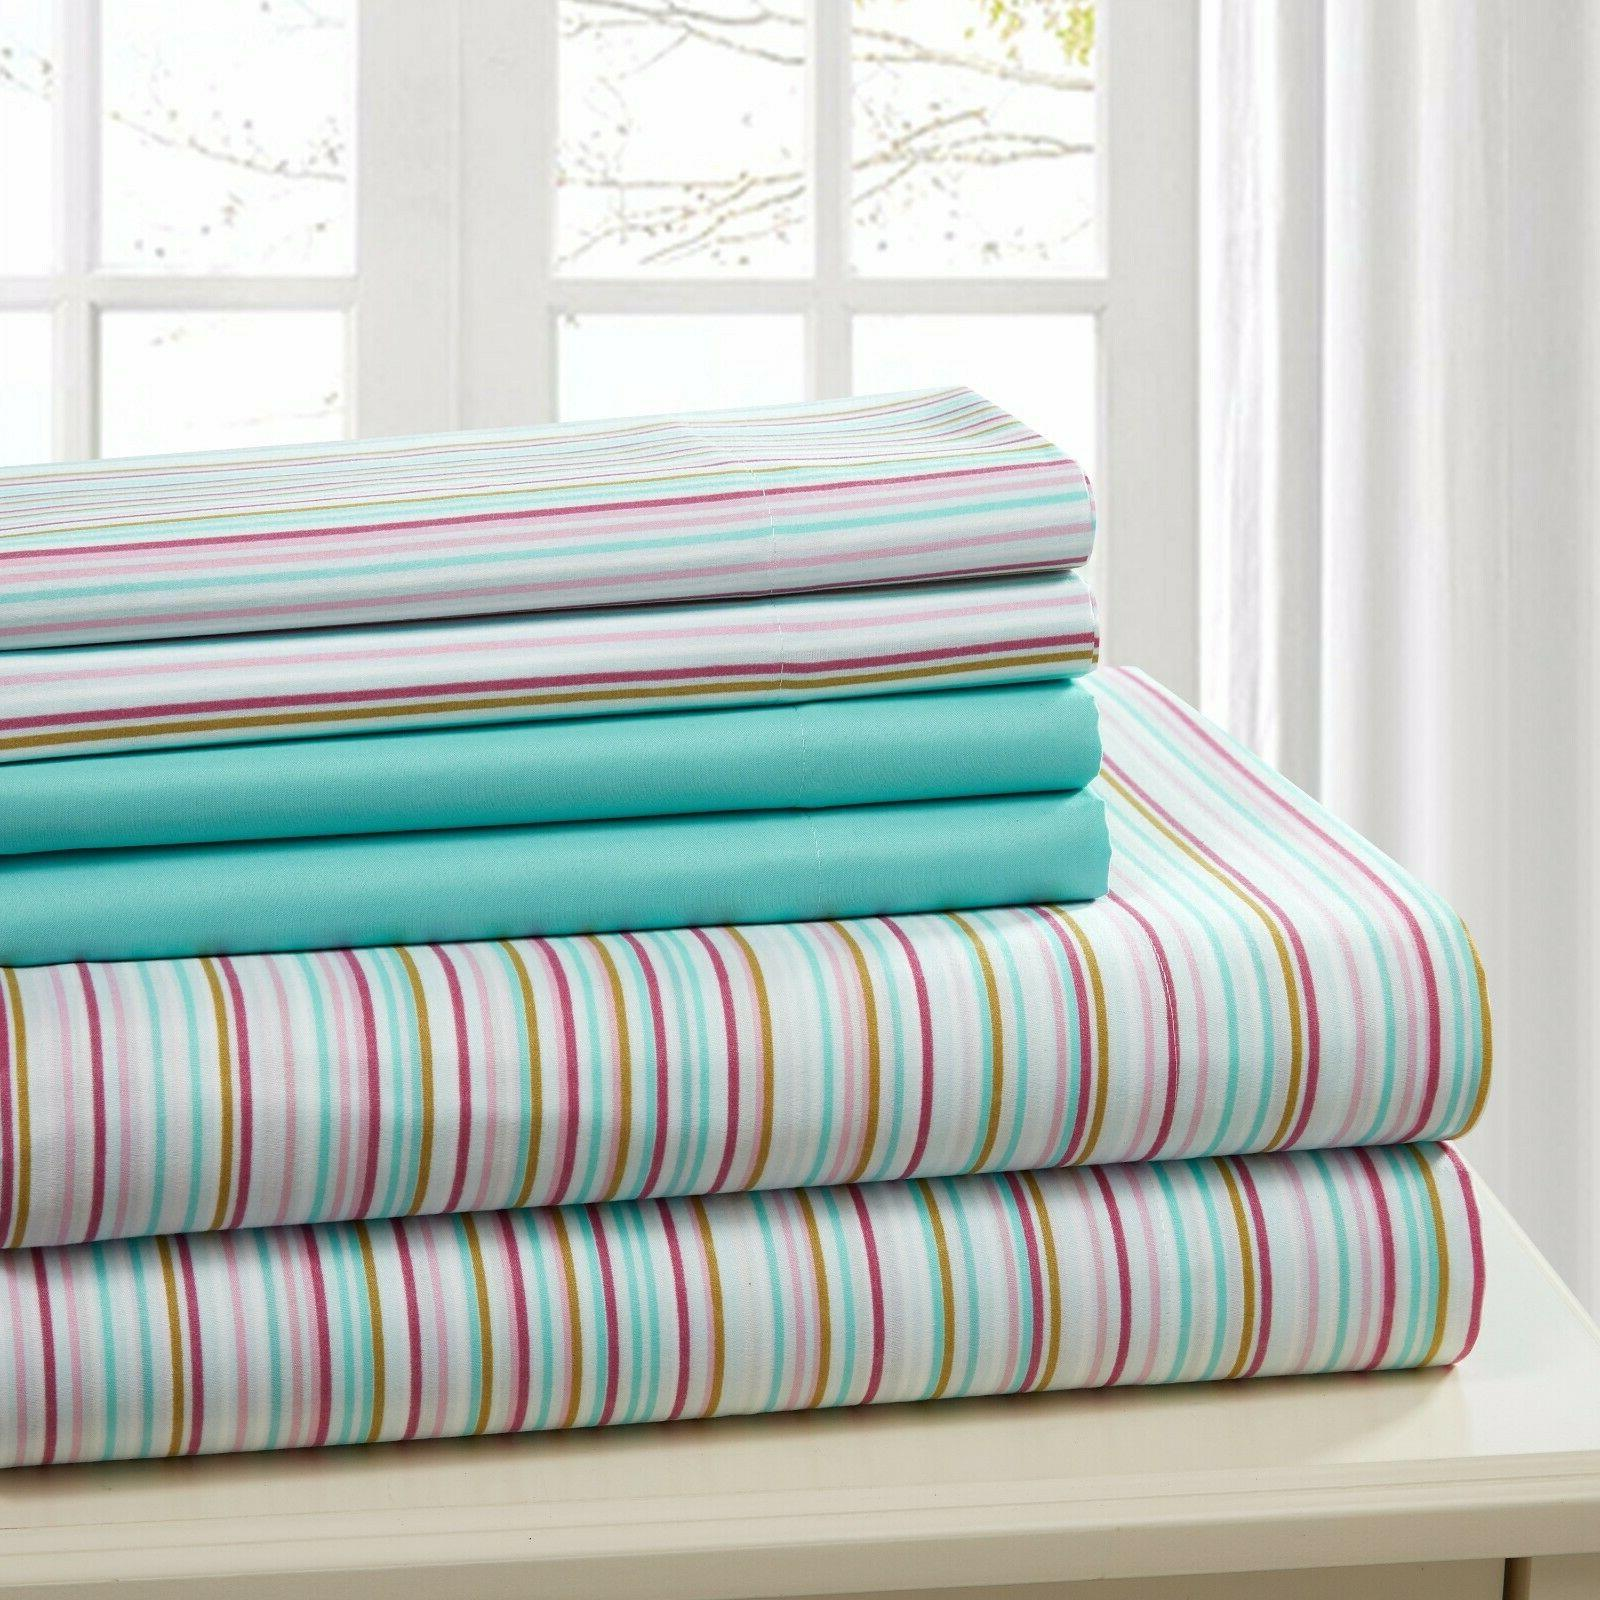 SHEET SET QUEEN 6 PIECE COTTON PERCALE PRINT SOFT DEEP POCKE